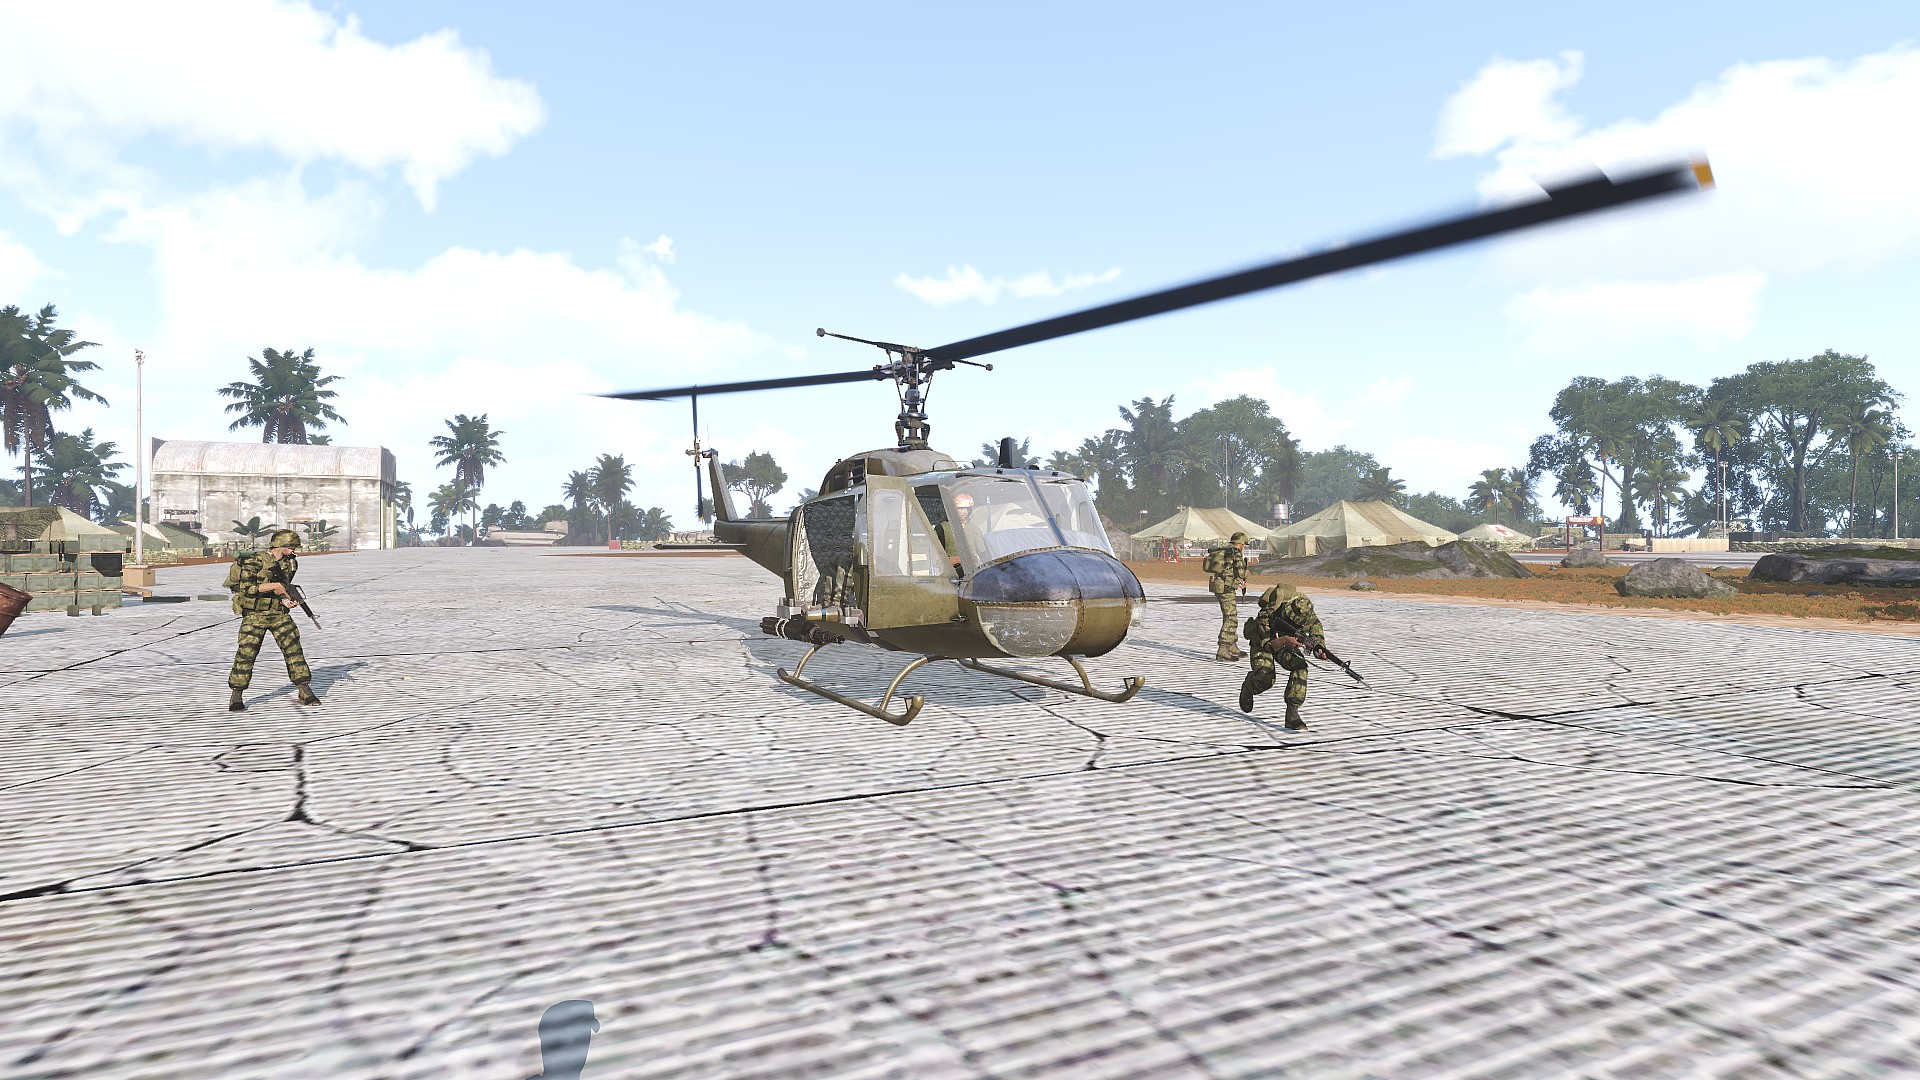 The gang sucessfully rescues a downed pilot